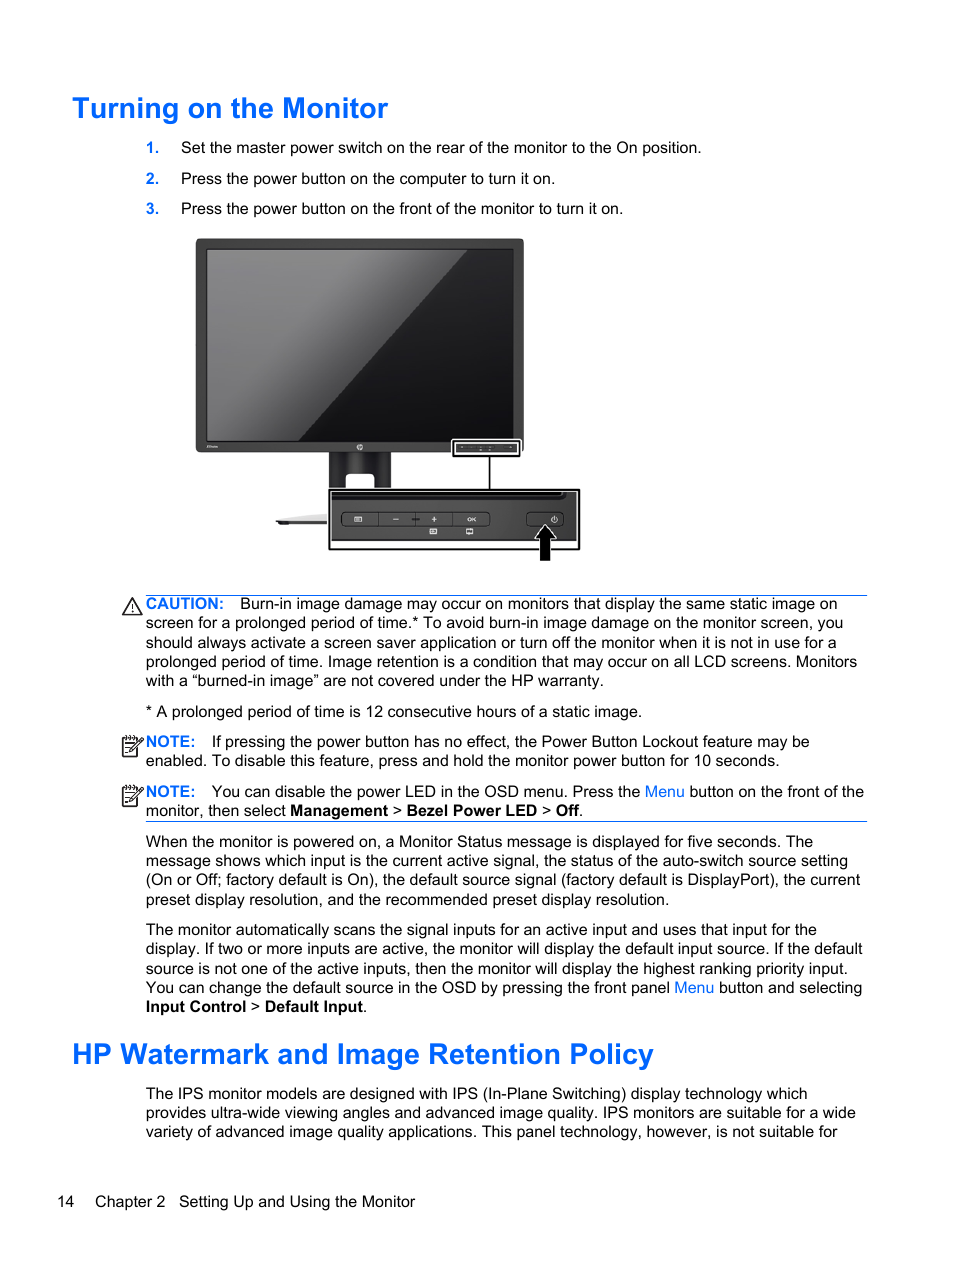 Turning on the monitor, Hp watermark and image retention